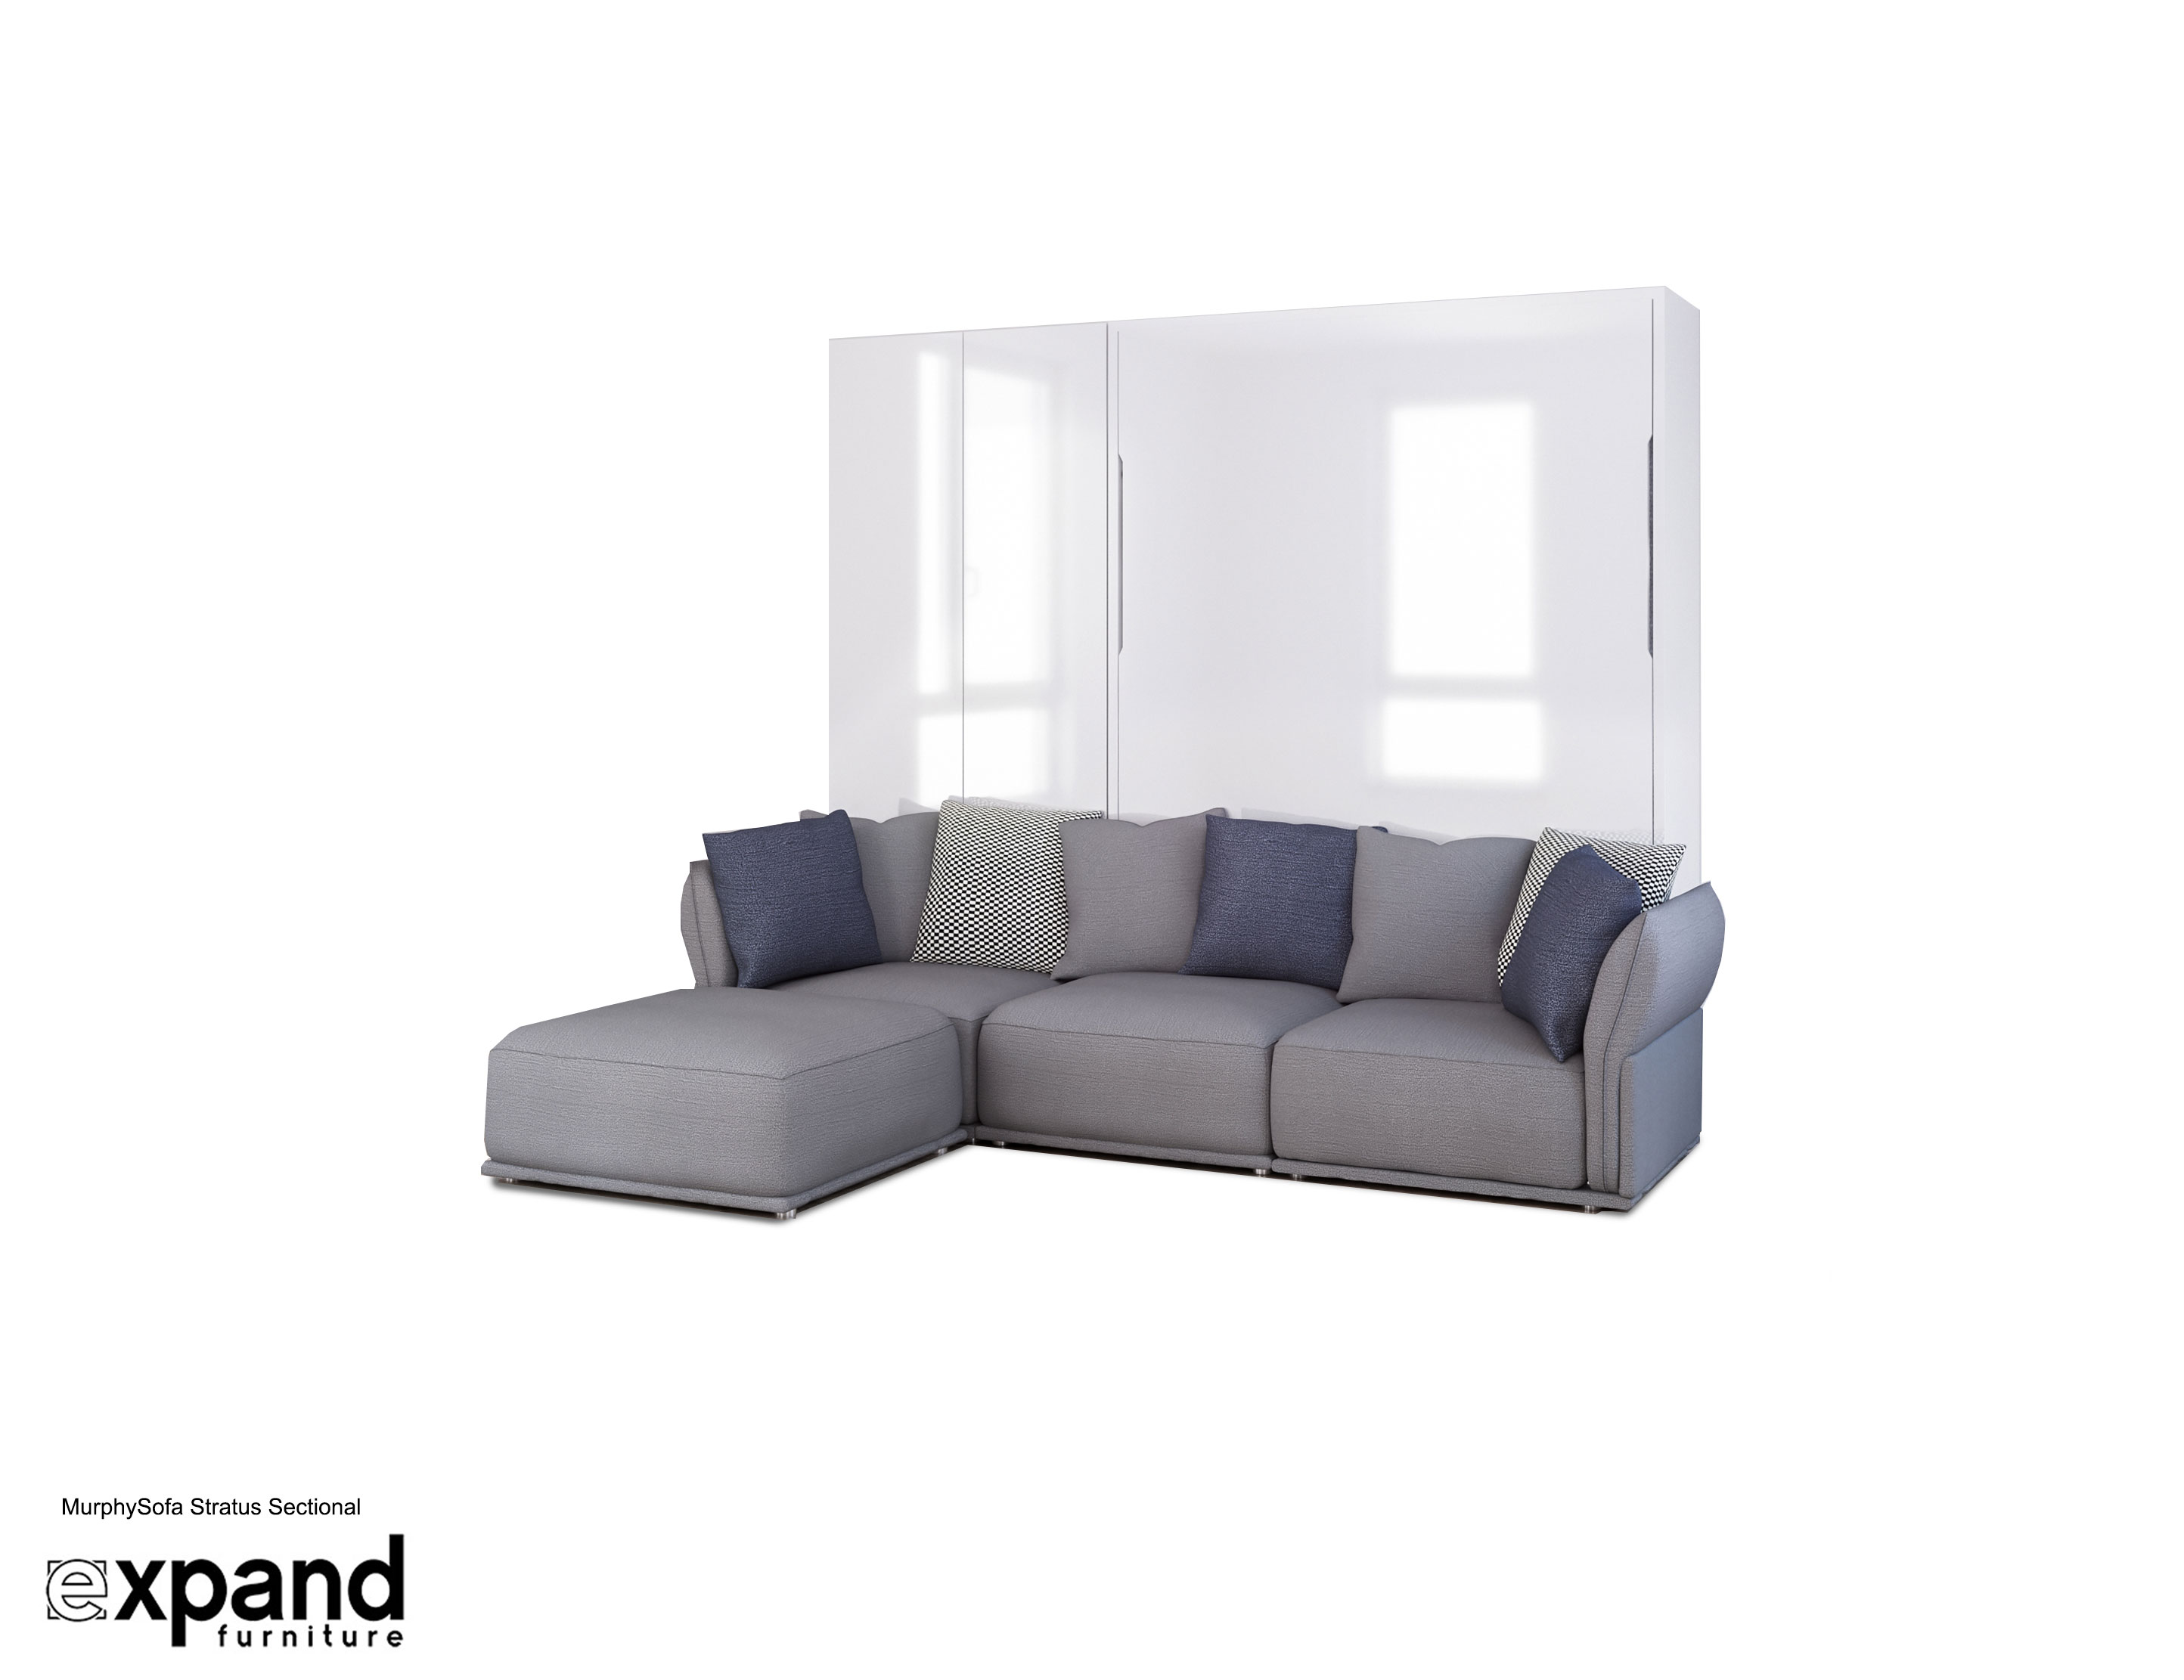 Hidden Beds   Beds That Fold Up  Provide Storage   Save Space MurphySofa Stratus   Sectional Queen wall bed system